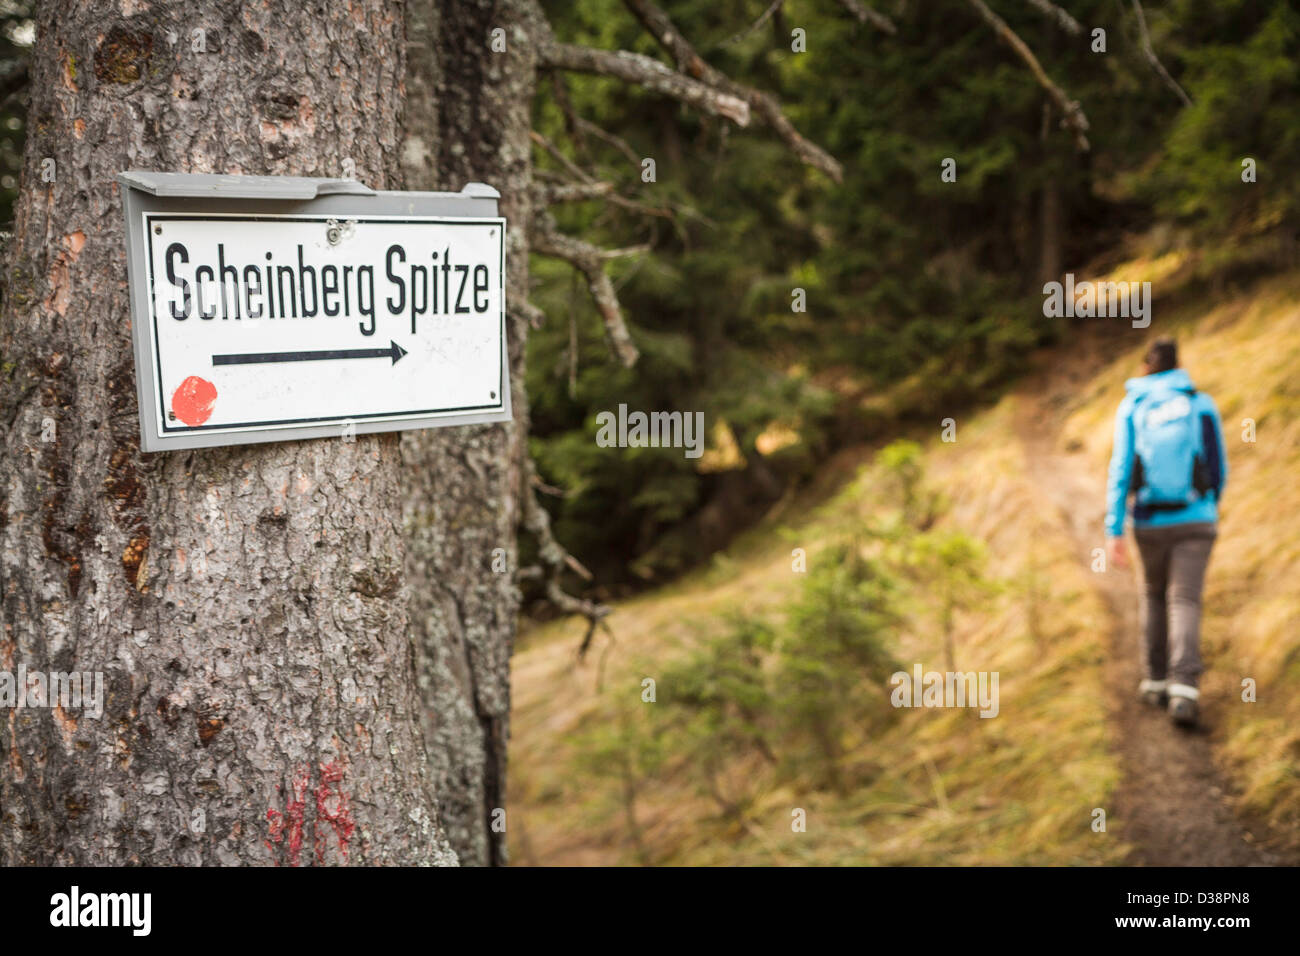 Scheinberg Spitze sign on rural trail Stock Photo